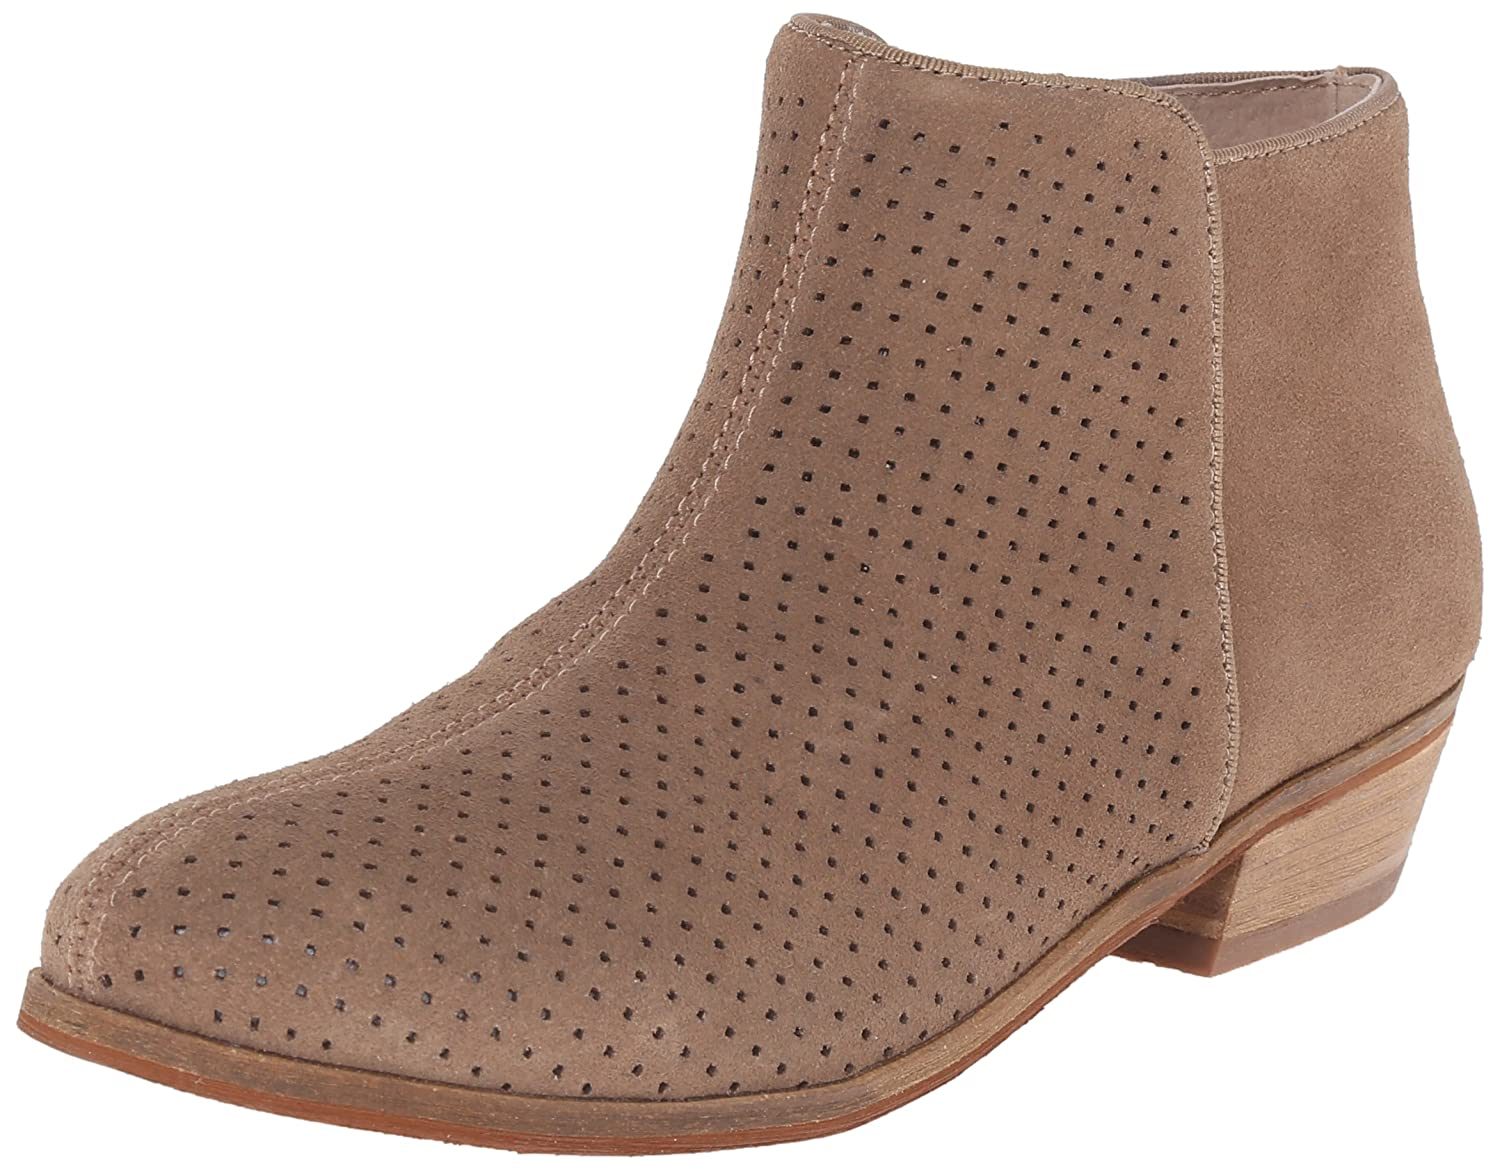 SoftWalk Women's Rocklin Chelsea Boot B011EZI2KO 10 B(M) US|Nude